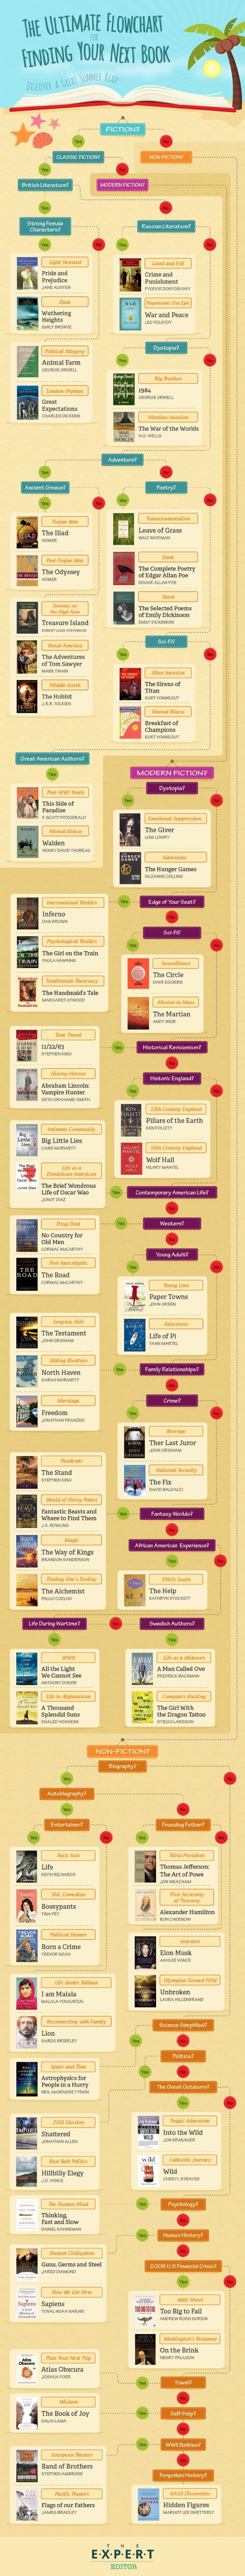 The ultimate flowchart to find the best summer read #infographic